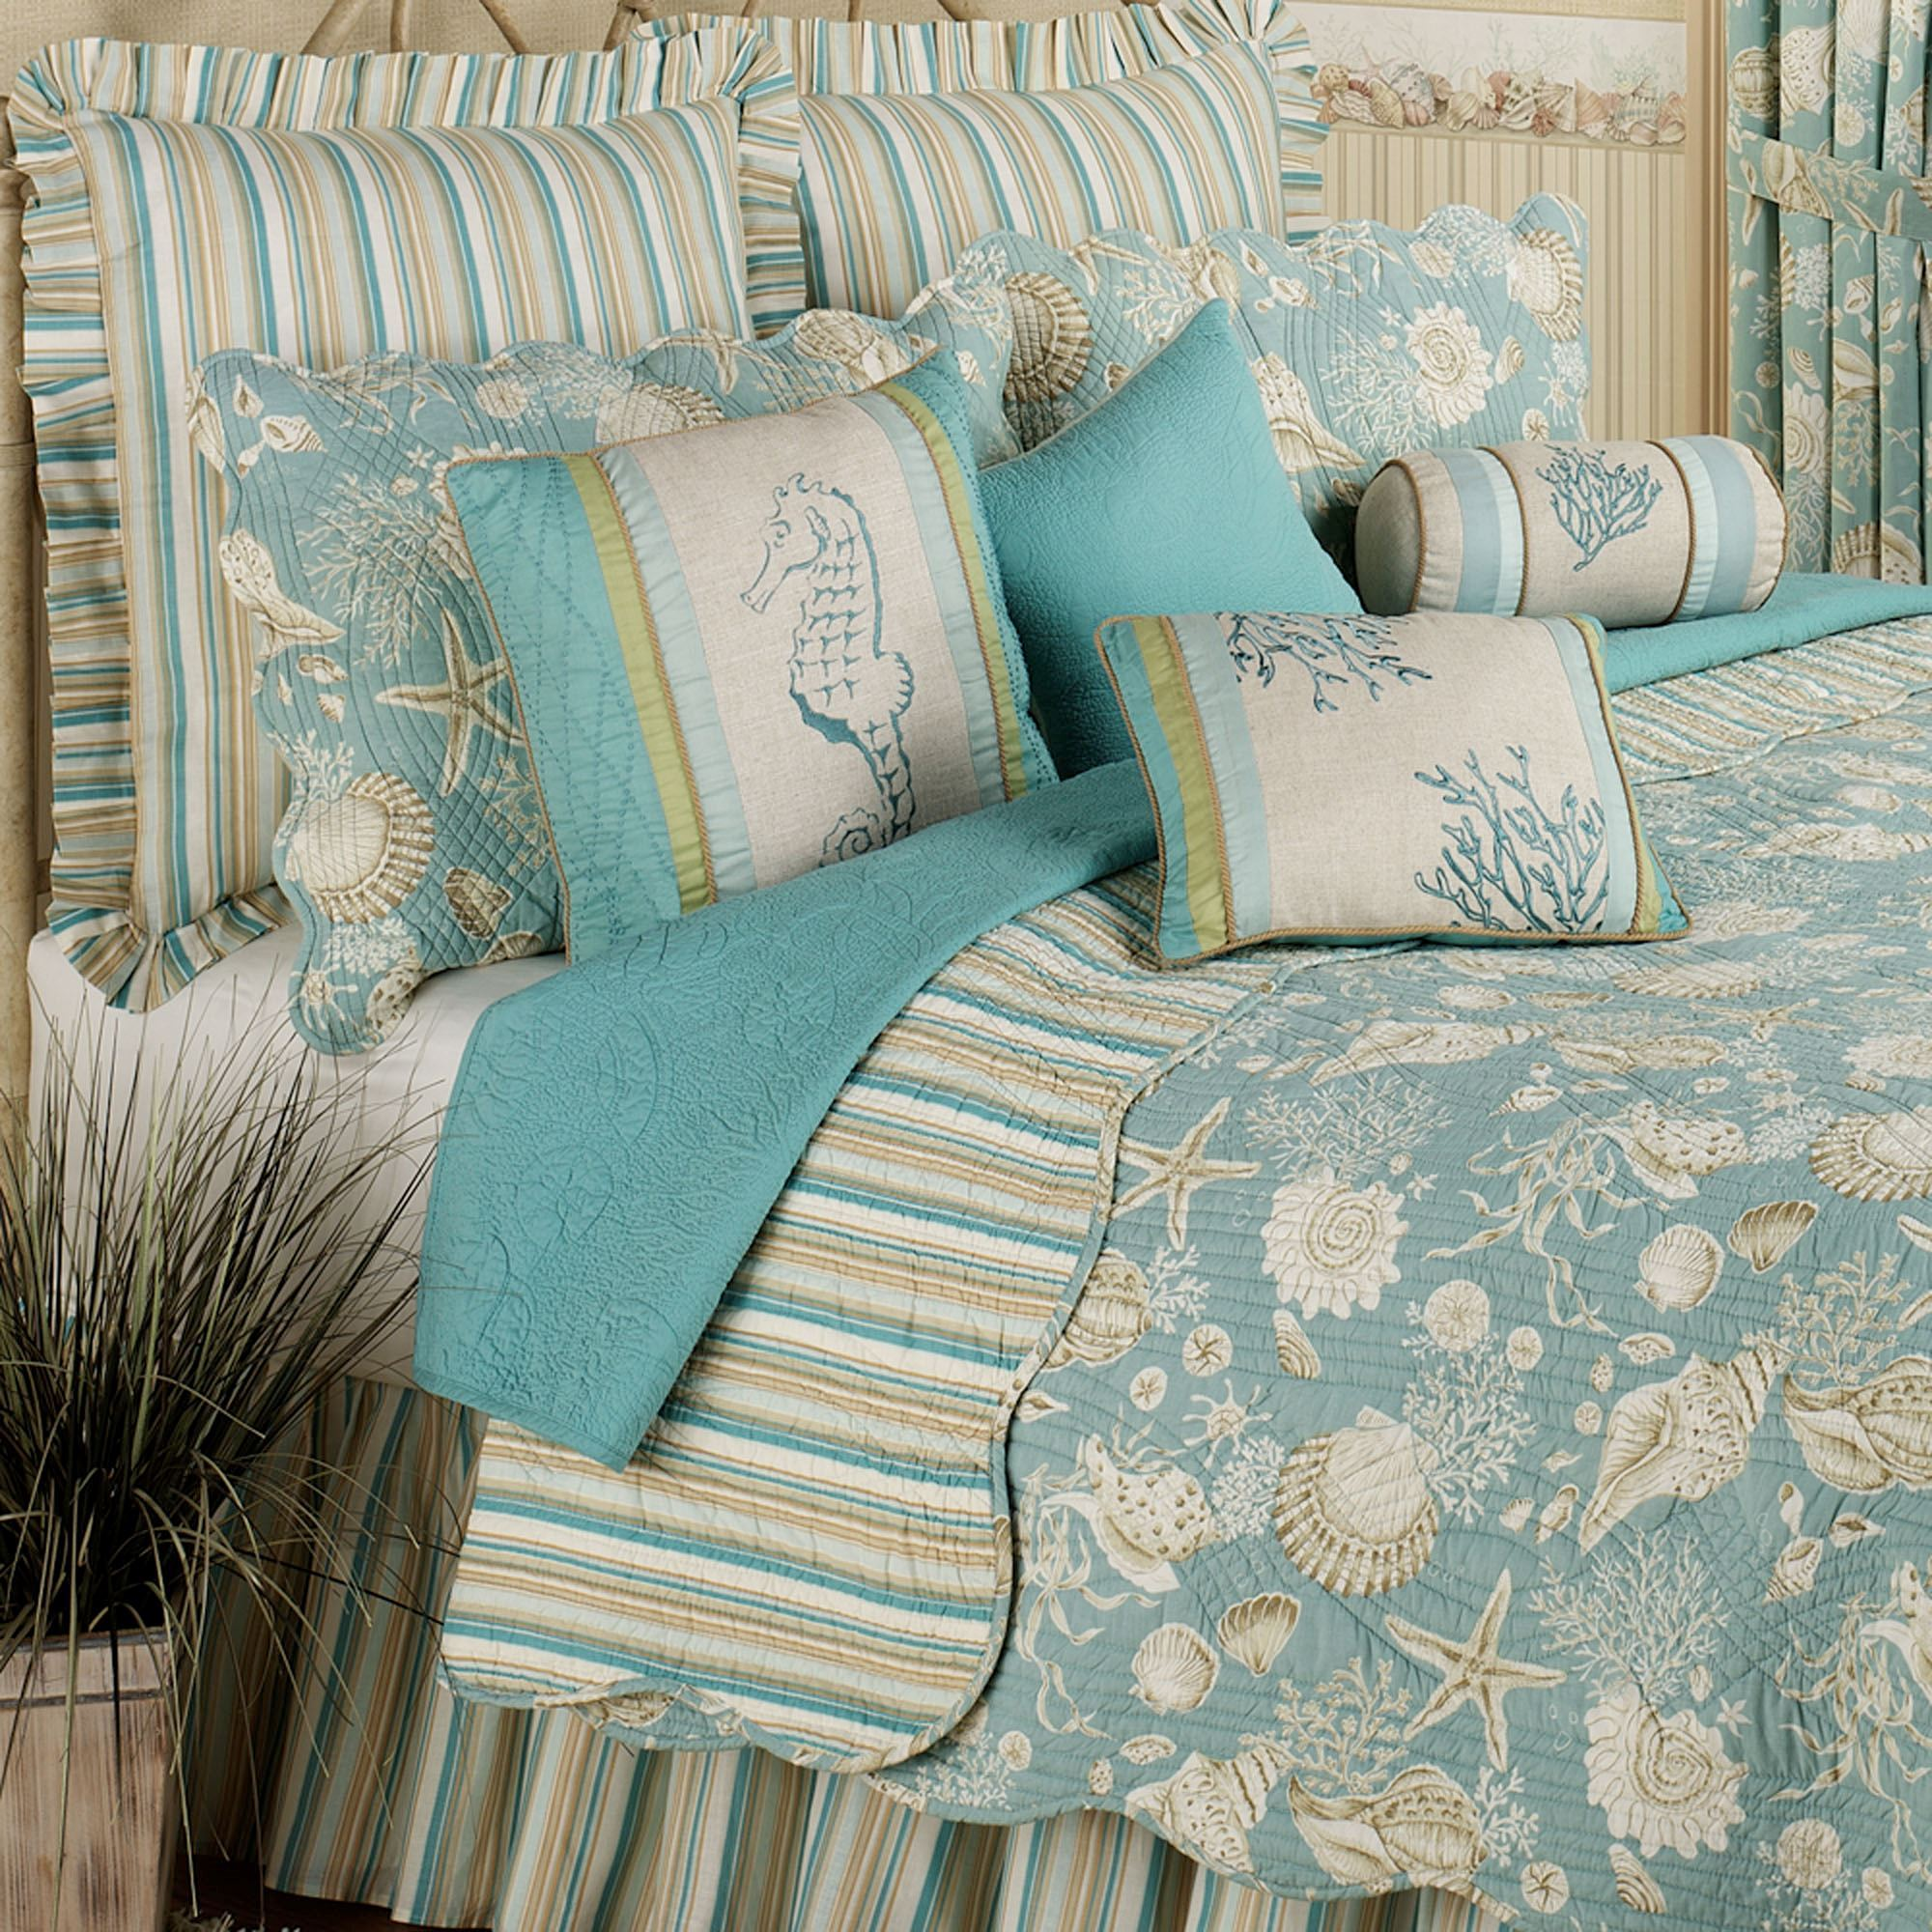 Natural Shells Coastal Quilt Bedding : teal quilt bedding - Adamdwight.com